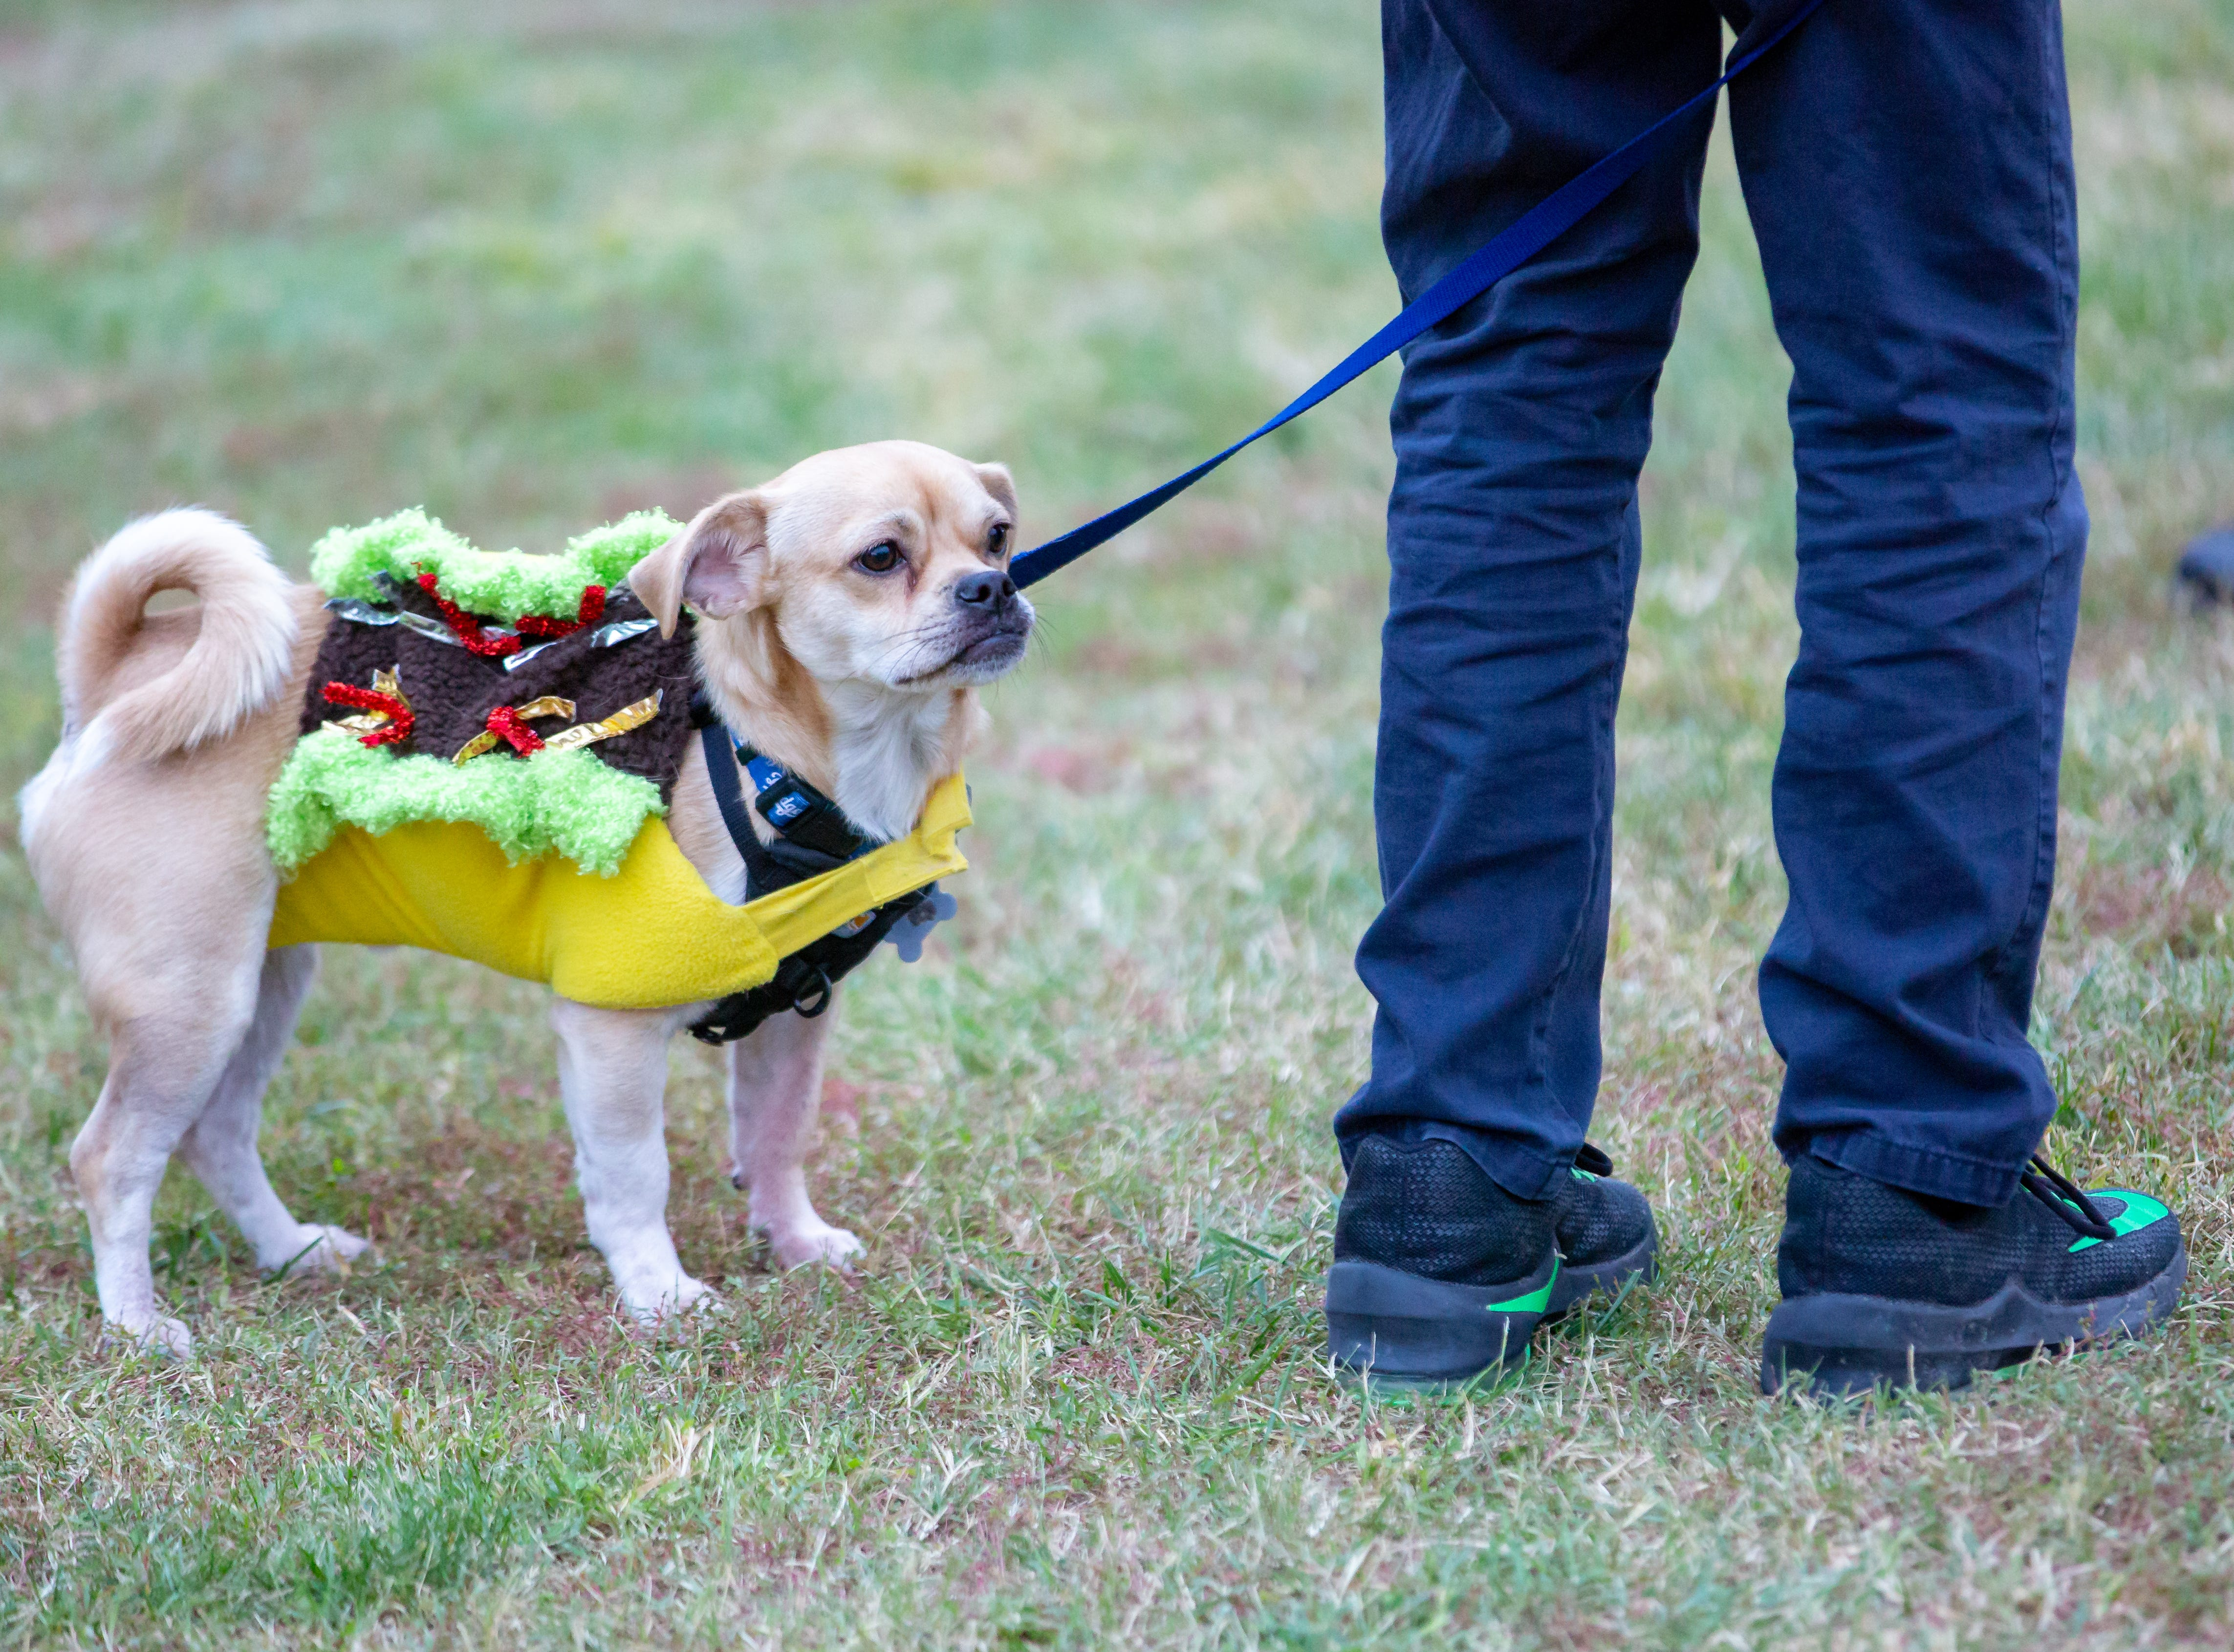 A dog named Menudo, 2, of Las Cruces, is dressed as a taco at the start of the Halloween costume contest for pets on Wednesday, Oct. 17, 2018, during the final Yappy Hour of the year at St. Clair Winery and Bistro.